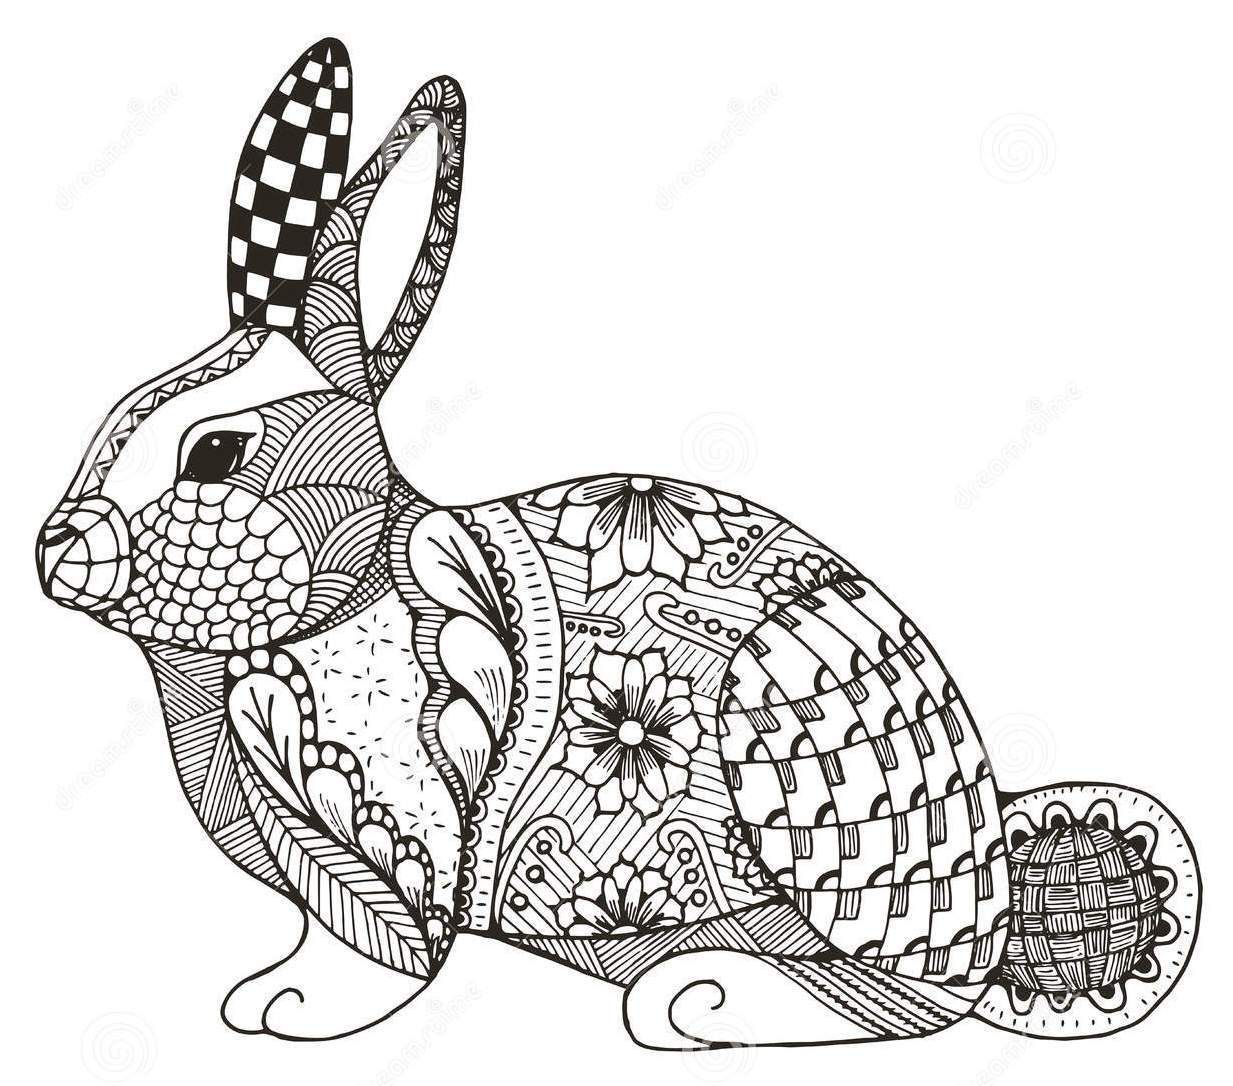 Zentangle Rabbit Abstract Coloring Page In